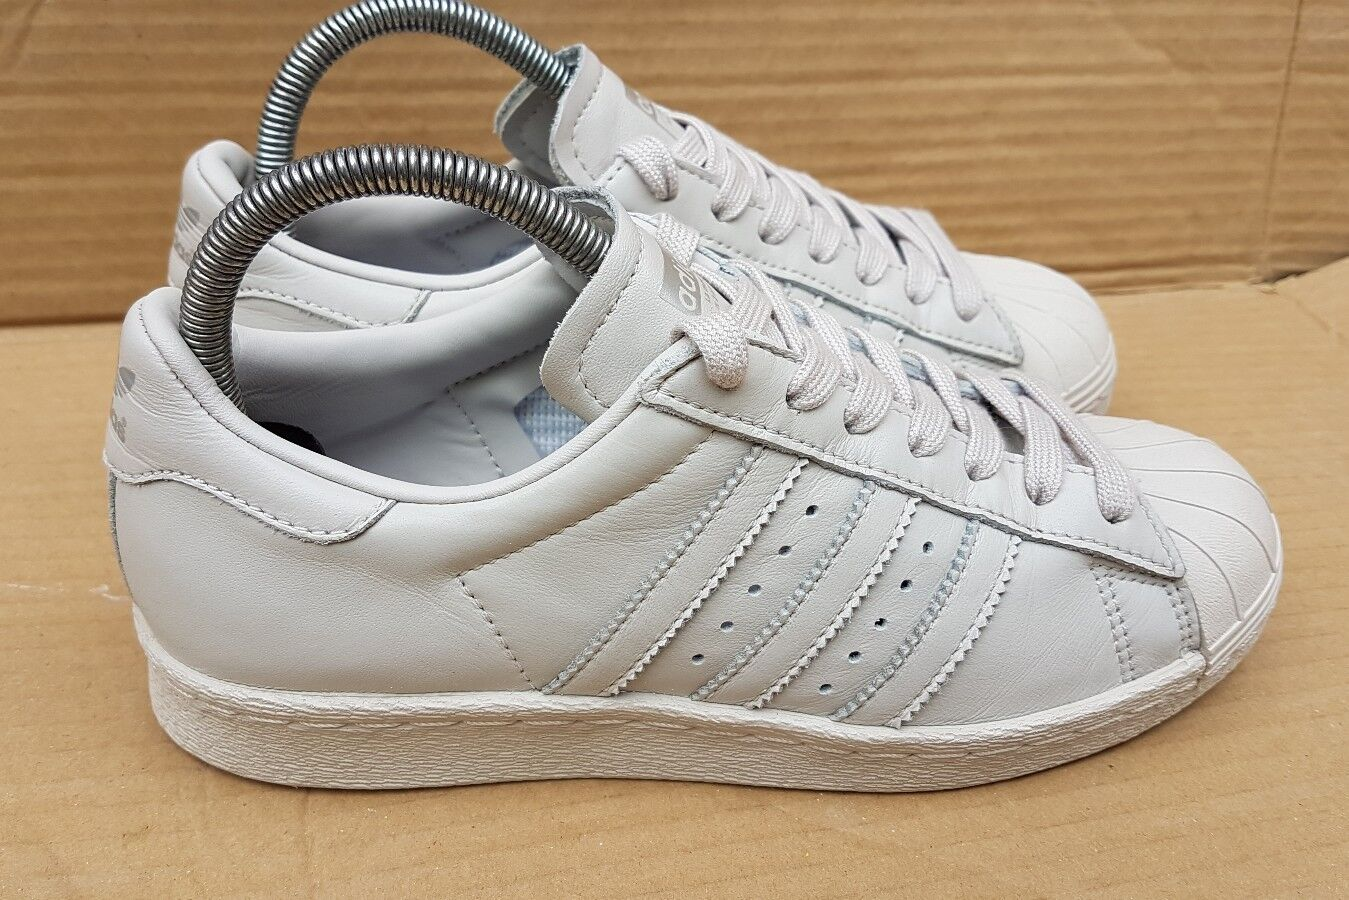 RARE MI ADIDAS SUPERSTAR Gris 80's TRAINERS Taille 4TRIPLE Gris SUPERSTAR CUSTOM DESIGNED 7bf364